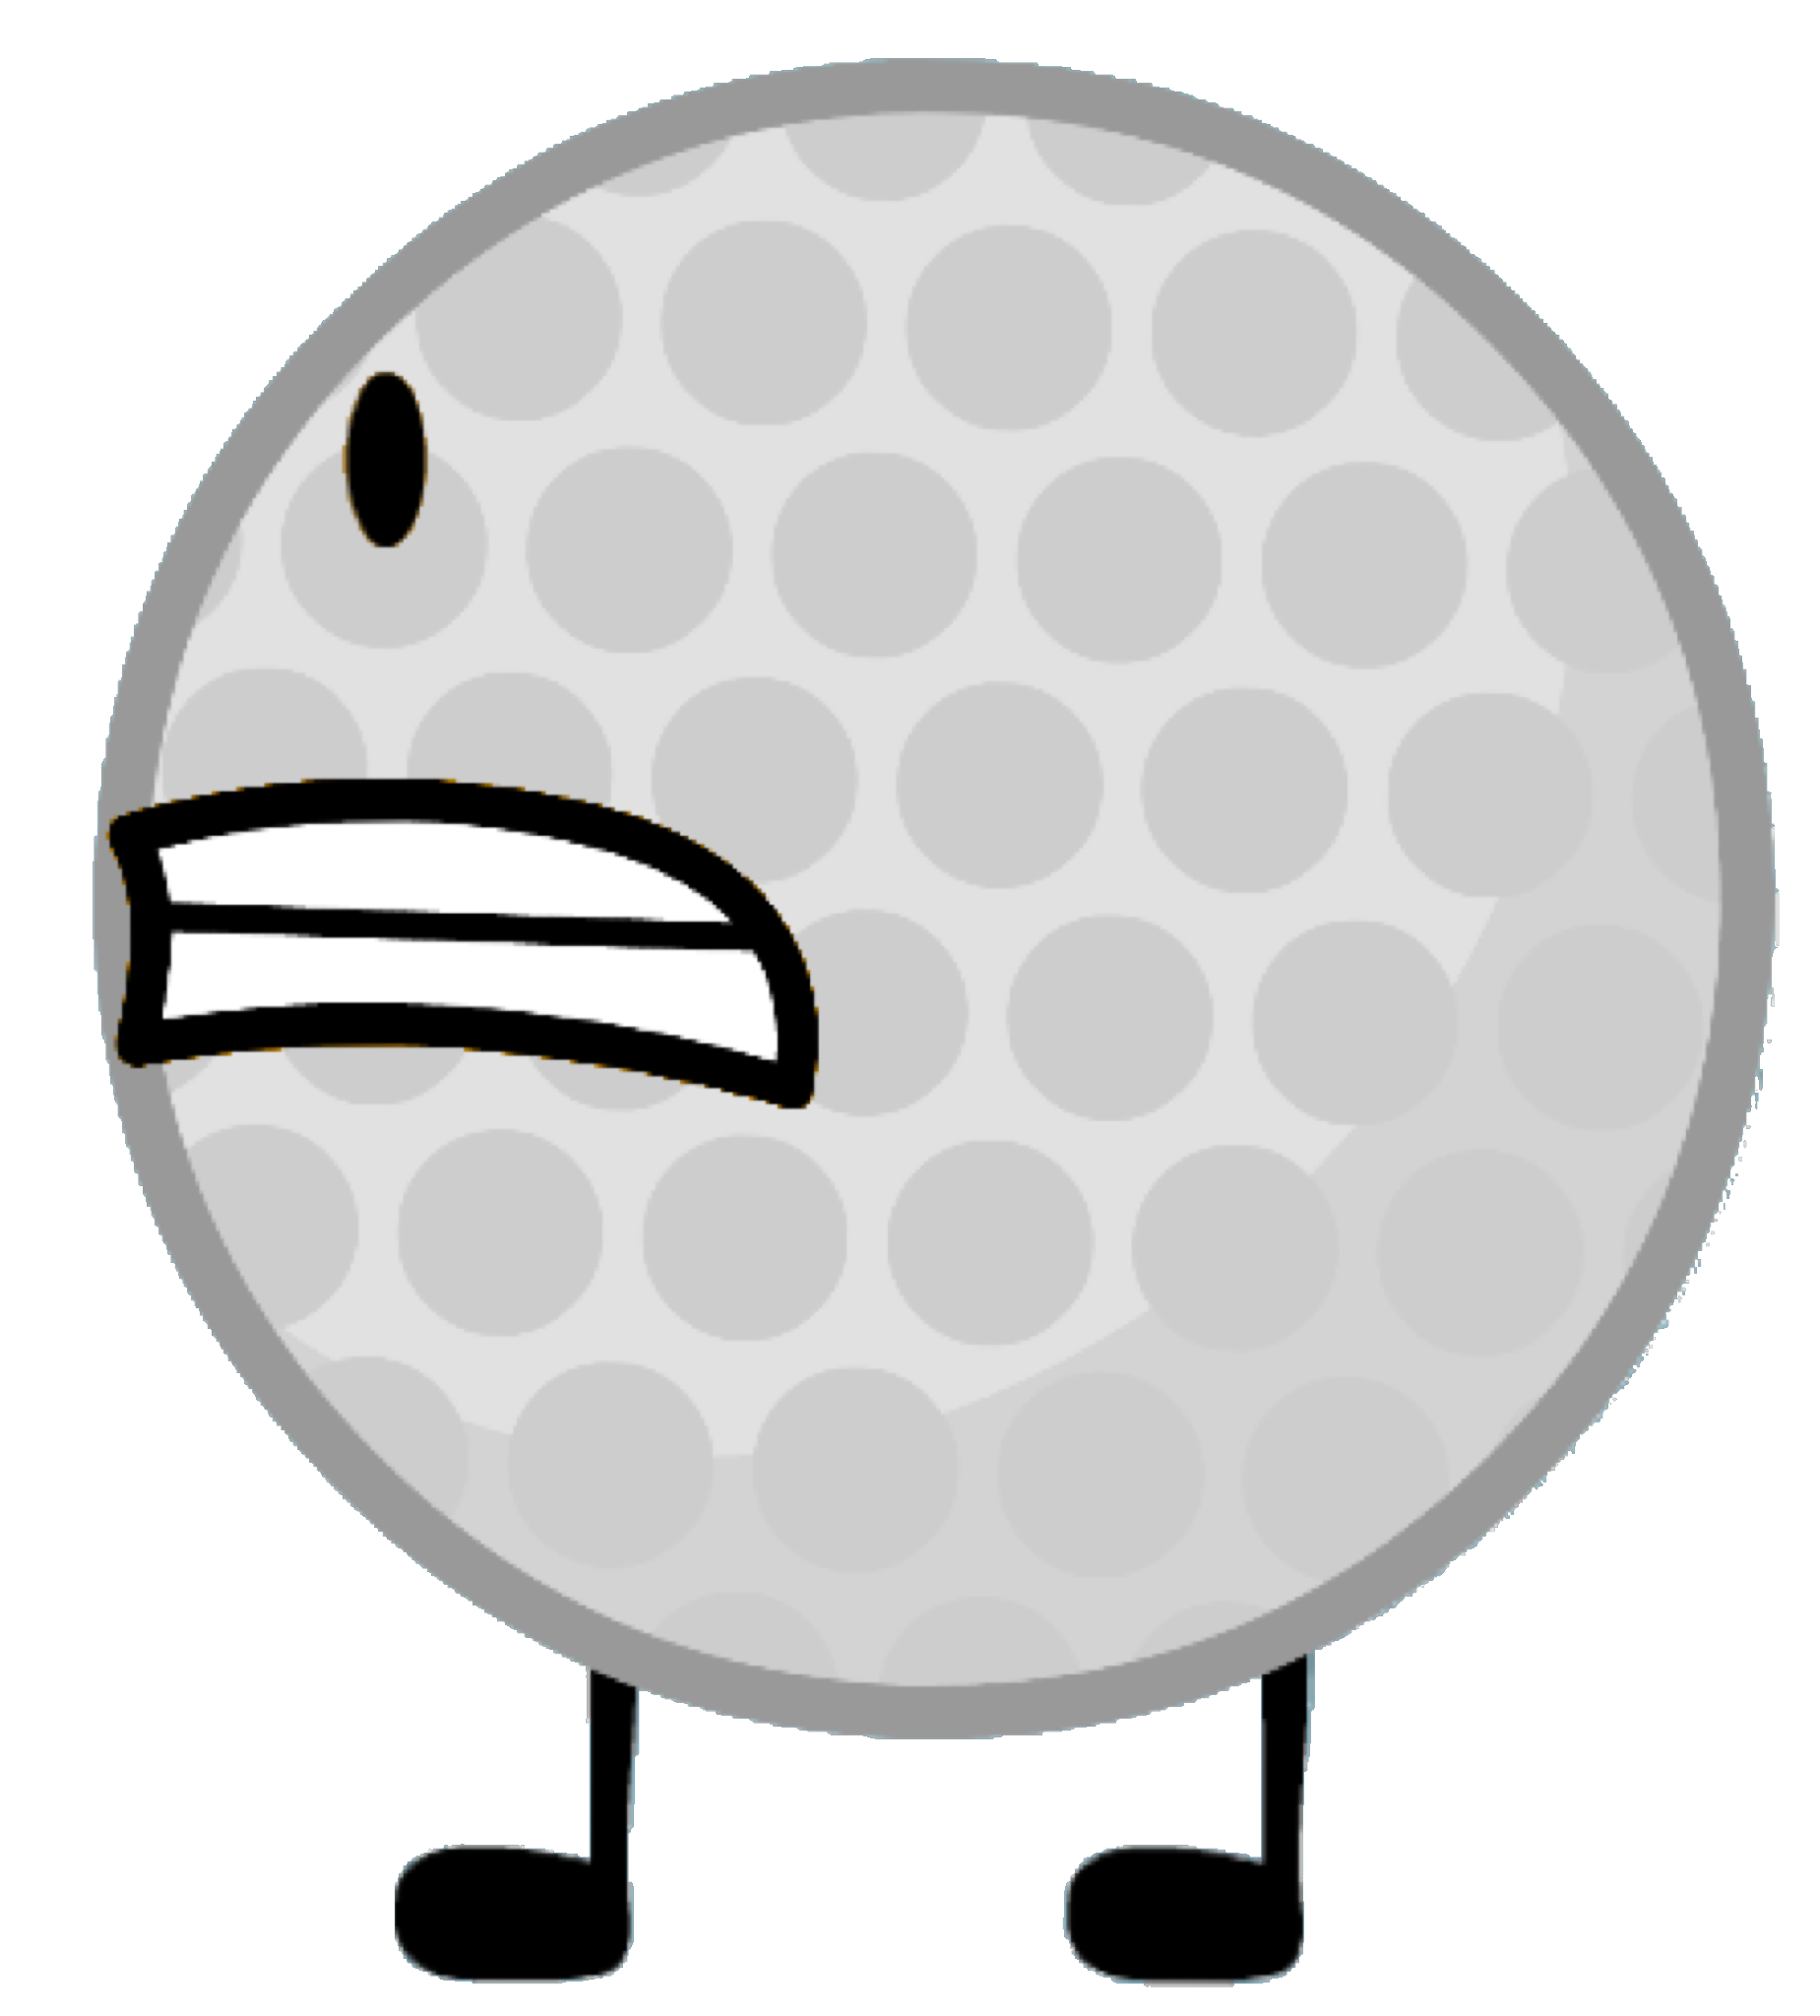 File:Golf ball.png